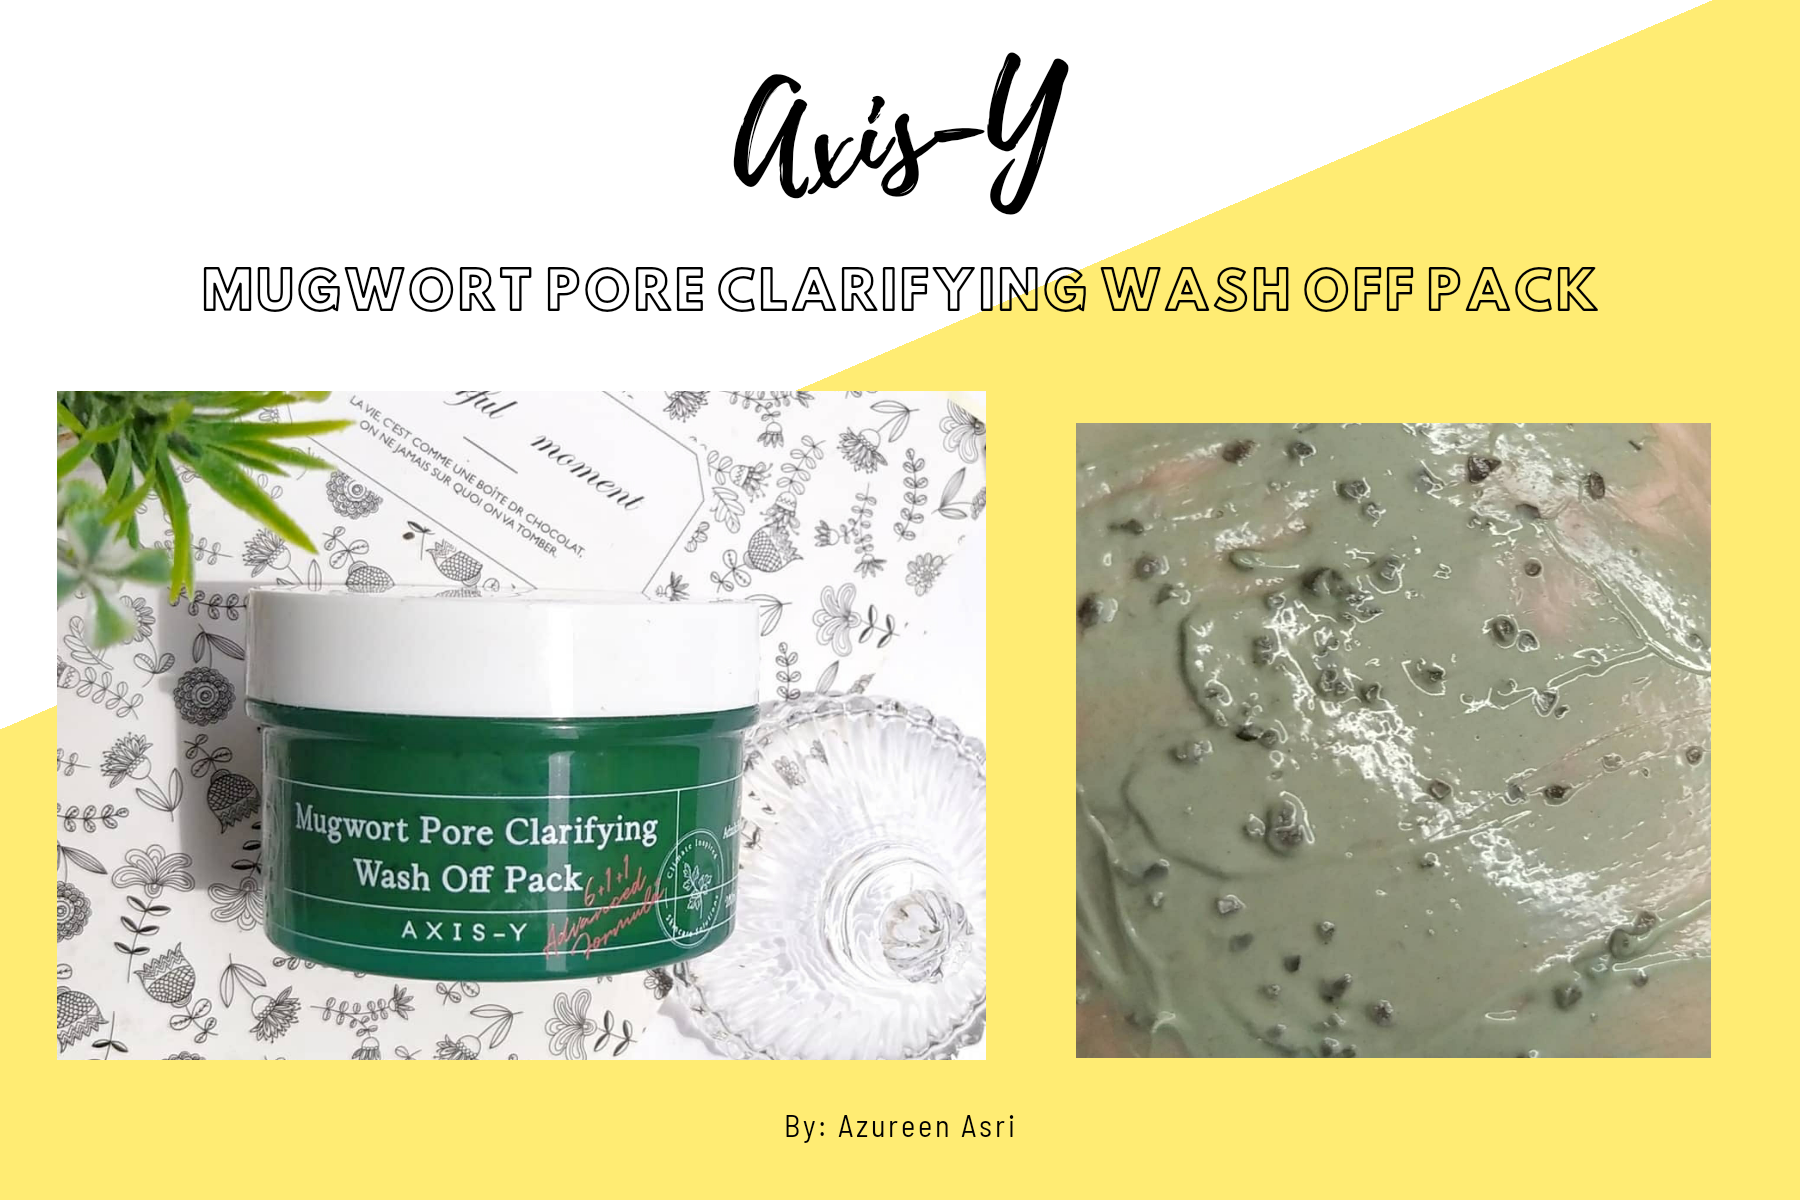 Decongest Skin with Axis-Y Mugwort Pore Clarifying Wash Off Pack